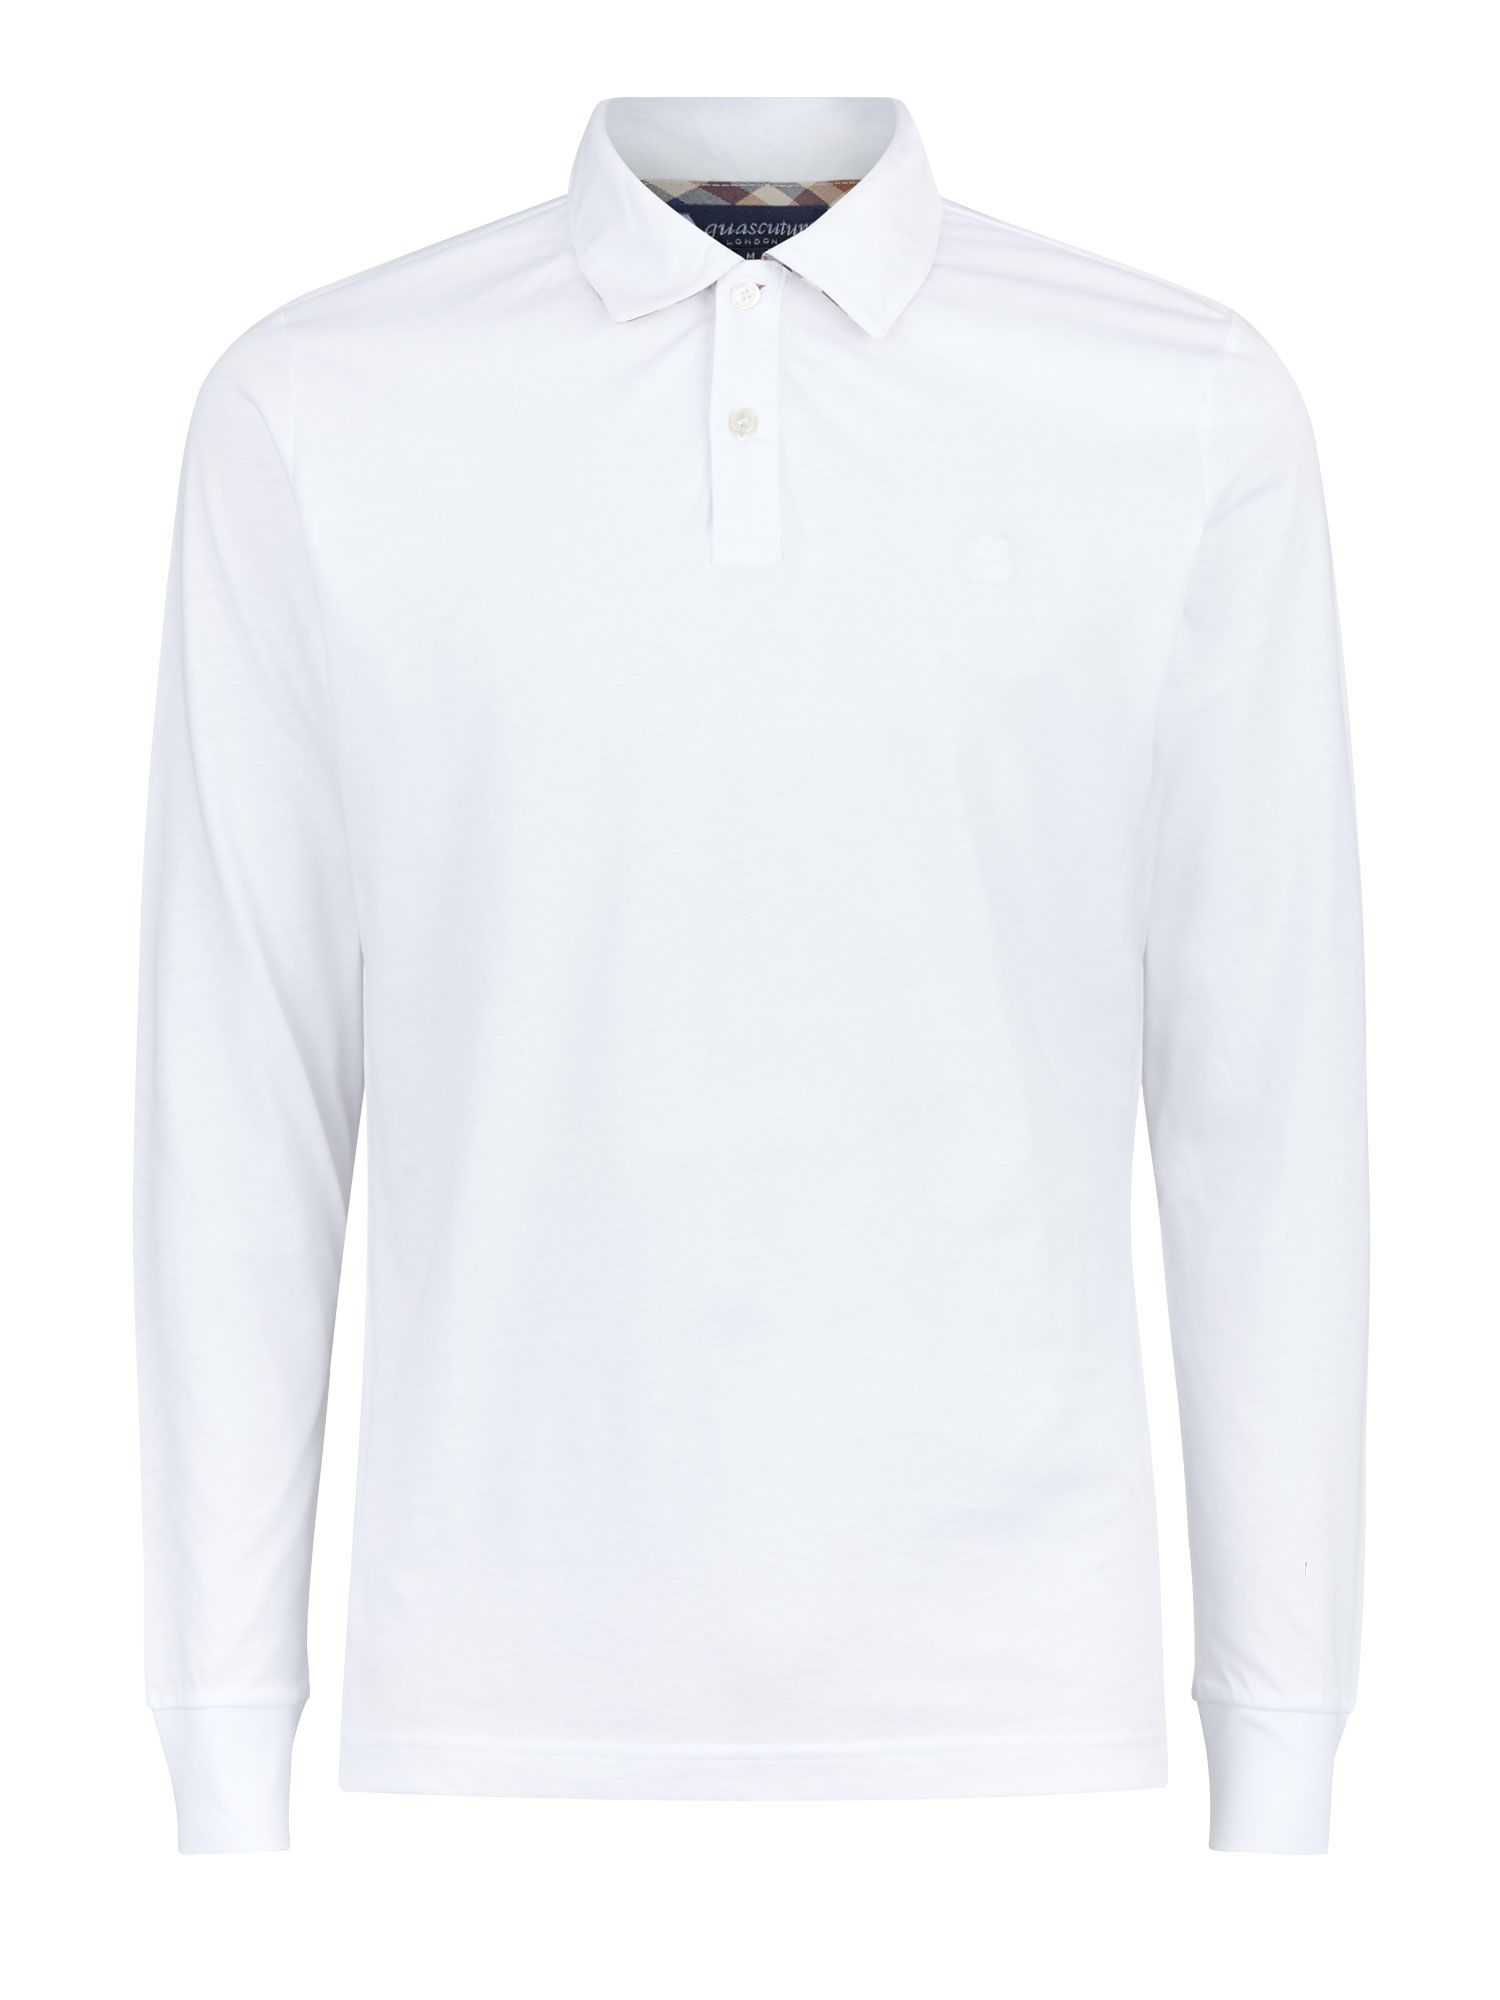 Men's Aquascutum Kendrick Long Sleeve Polo, White